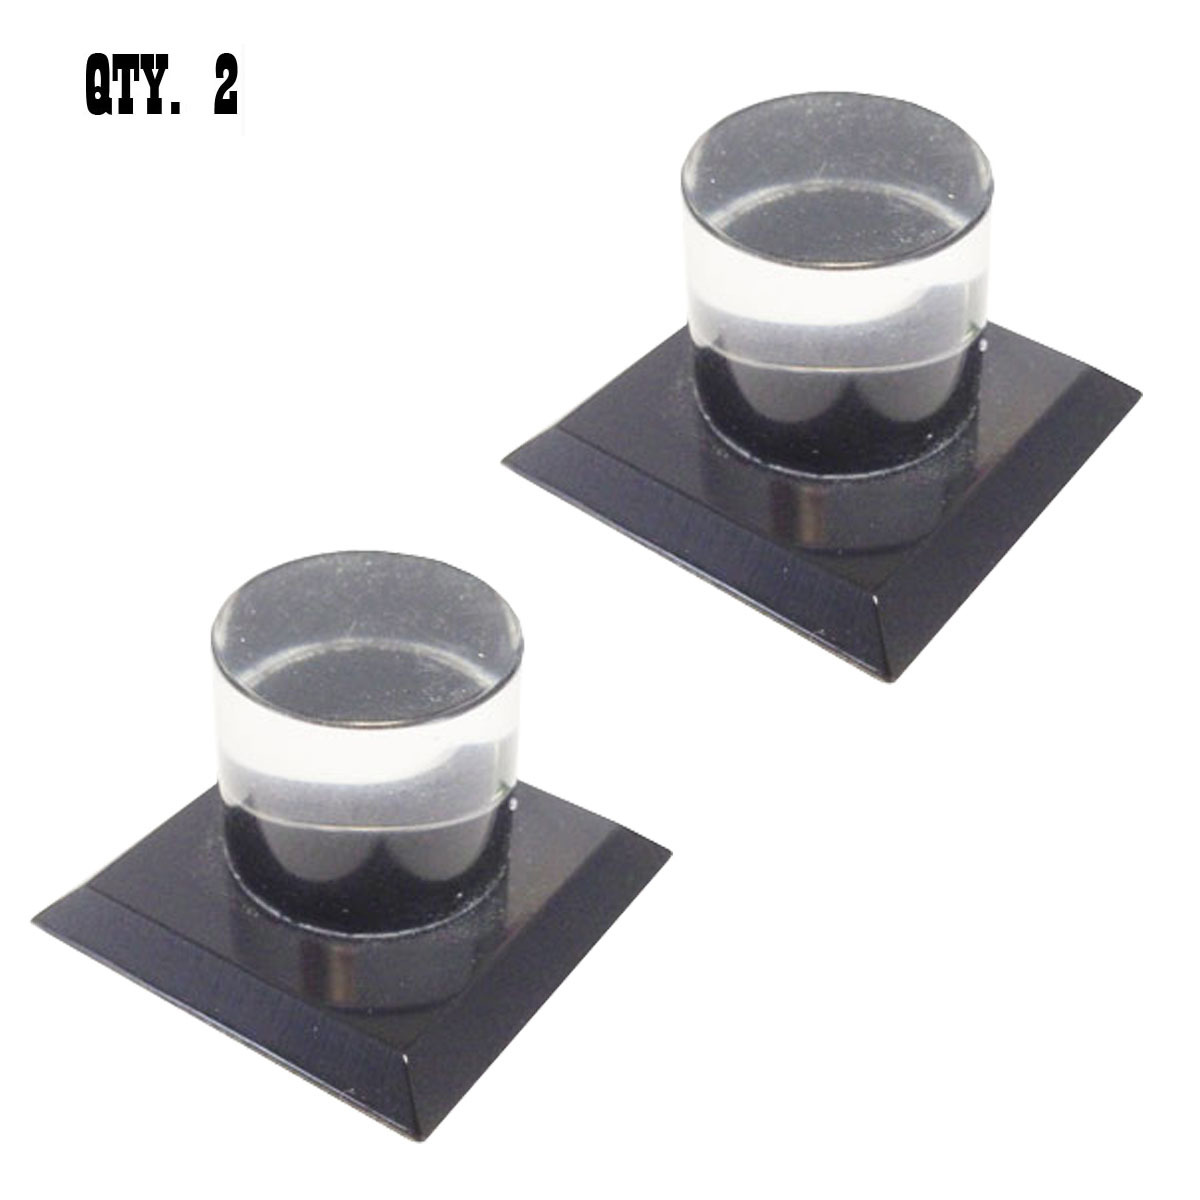 Black Acrylic Stick-On Mirror Knobs - Pack of 2 - $14.95